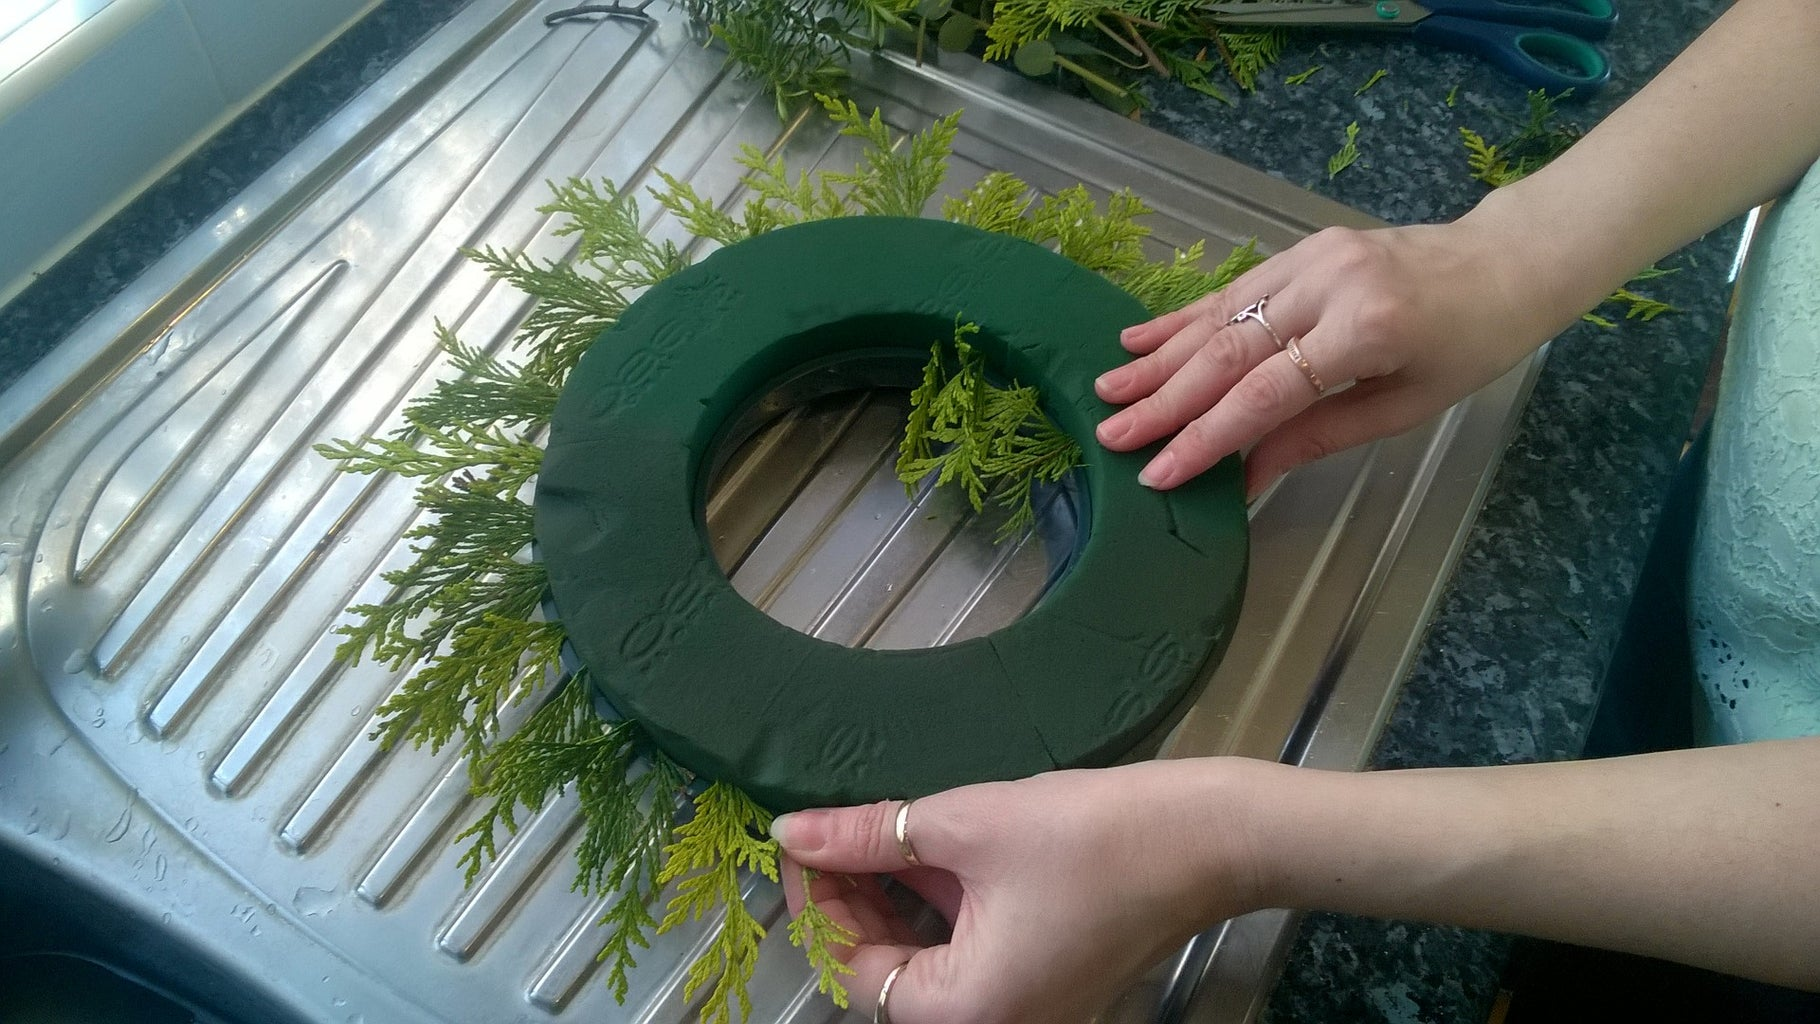 Wetting the Ring and Adding Foliage